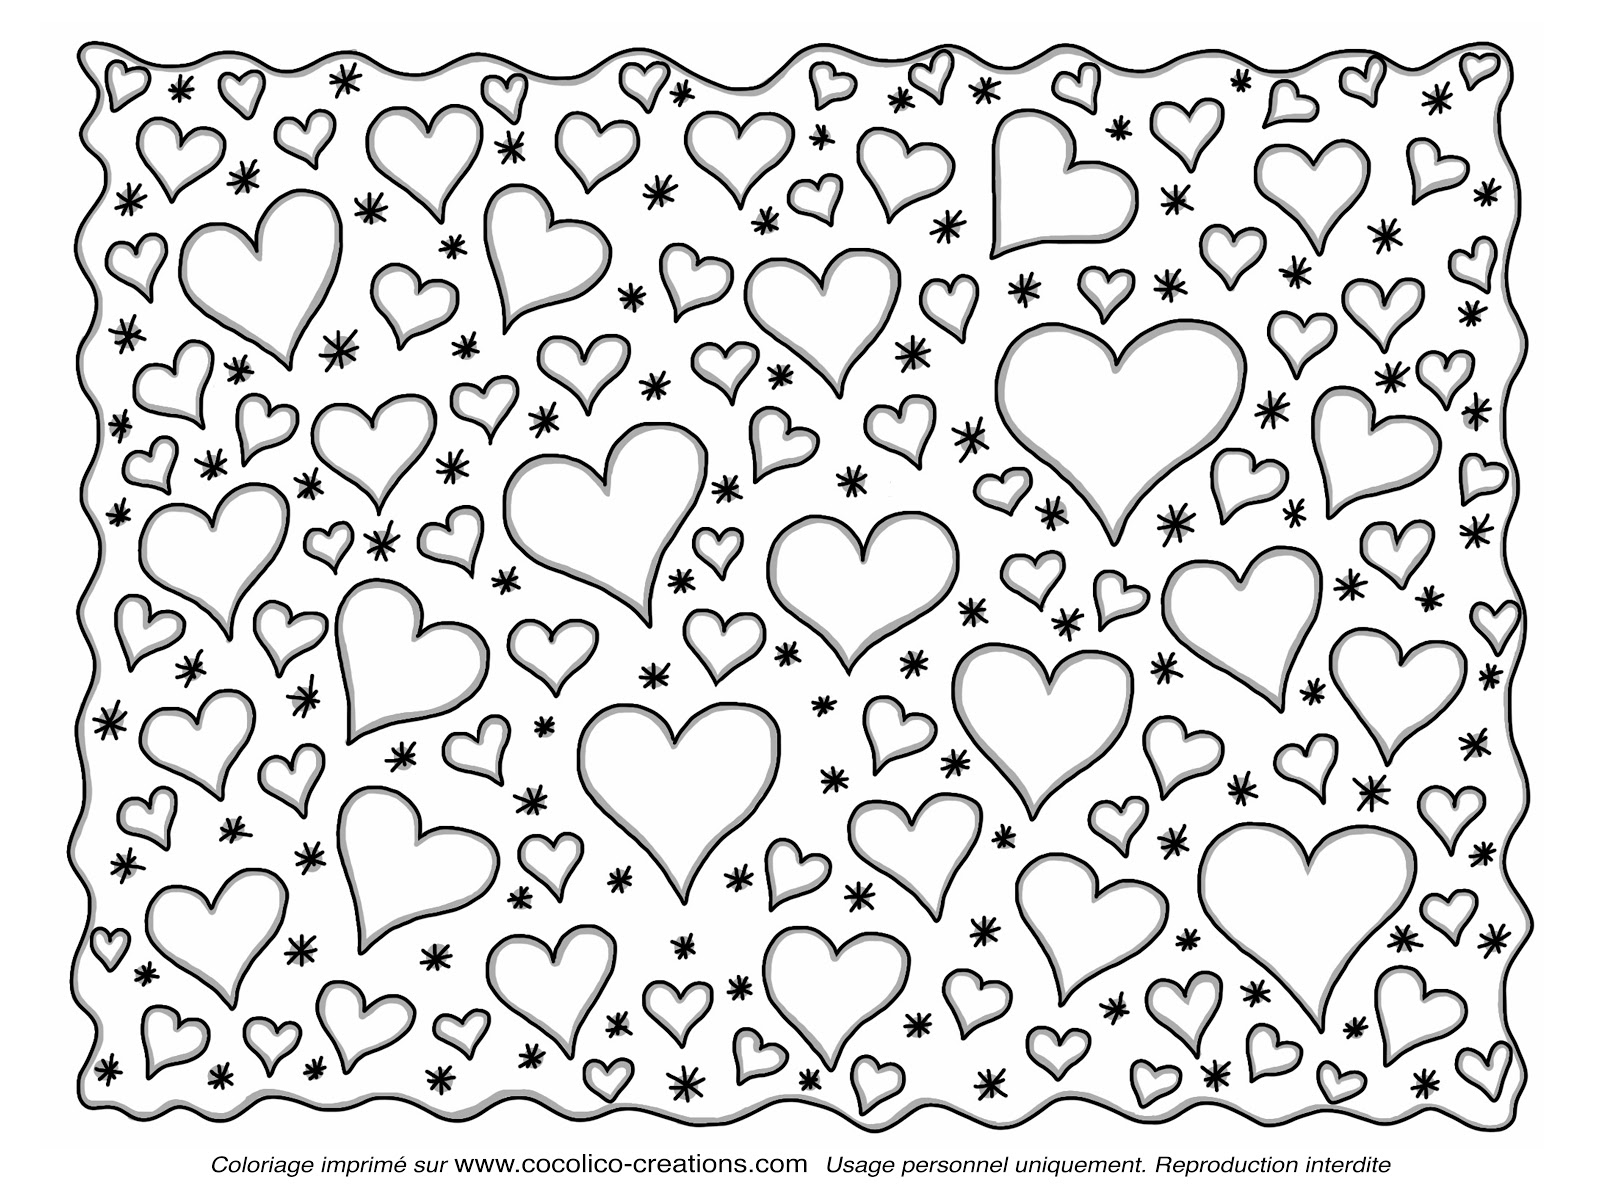 Cocolico creations coeurs for Motif dessin